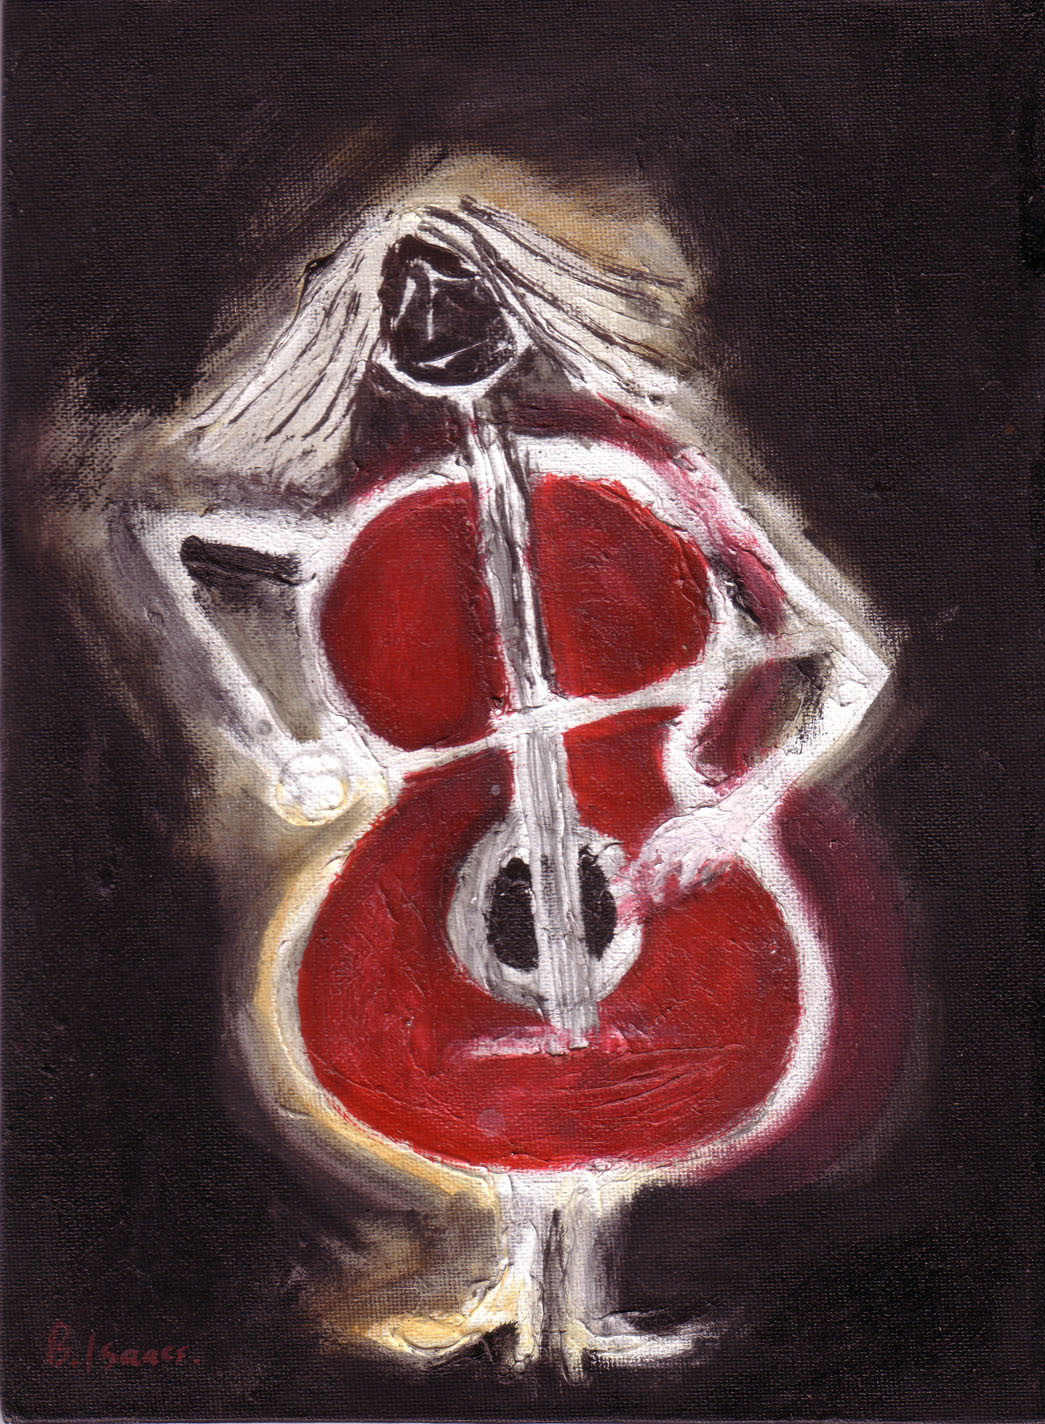 I AM A CELLO Oil on Canvass Board | 18 x 24 cm | 2008  Buy Framed £260.00